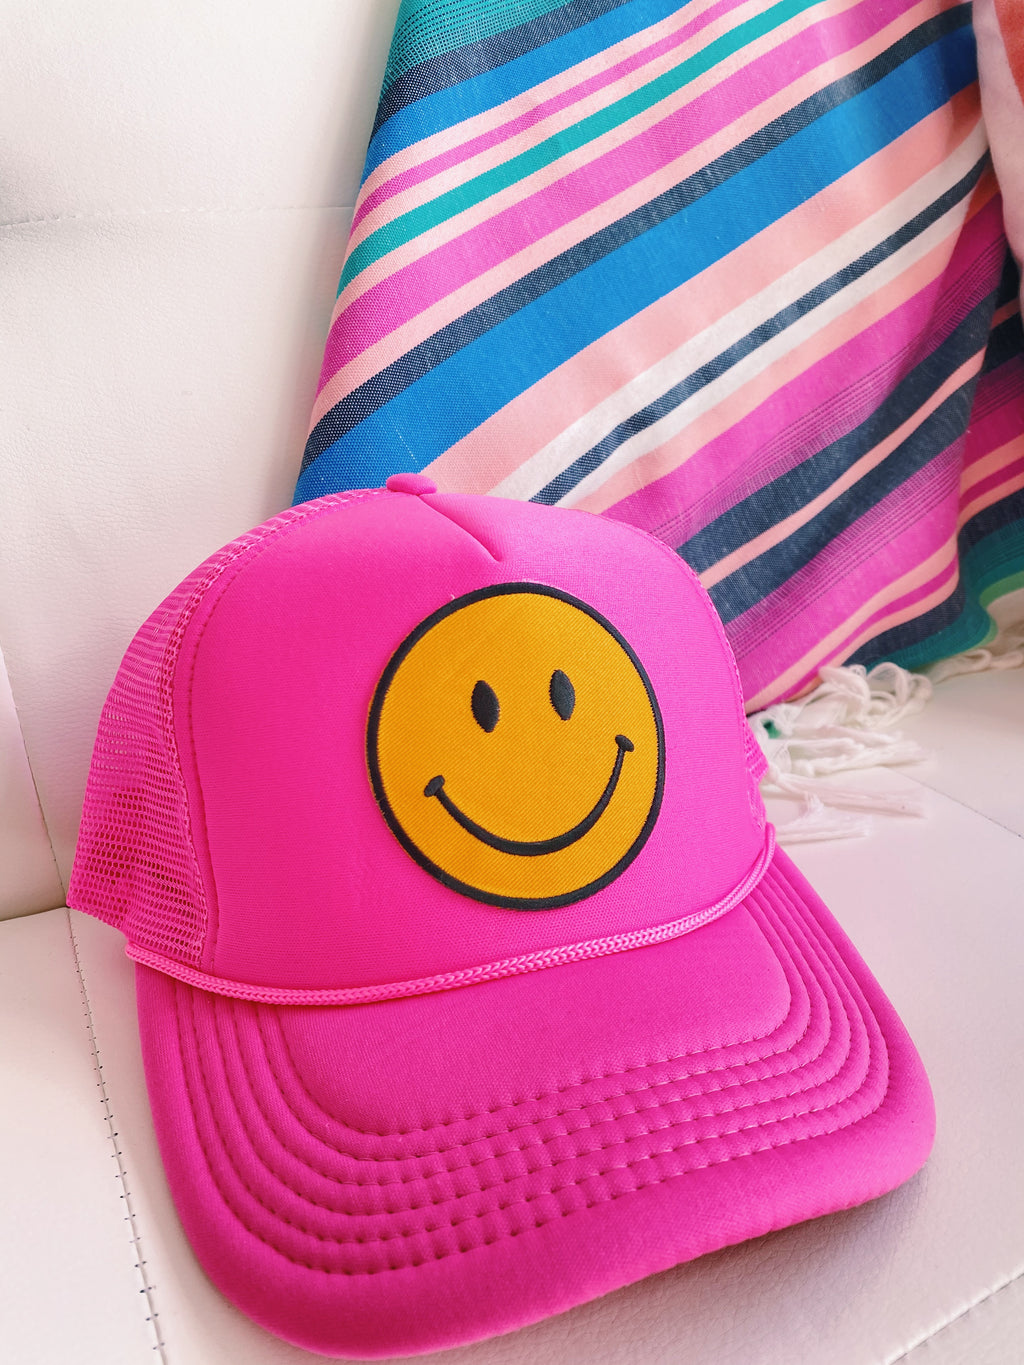 Pink smiley hat